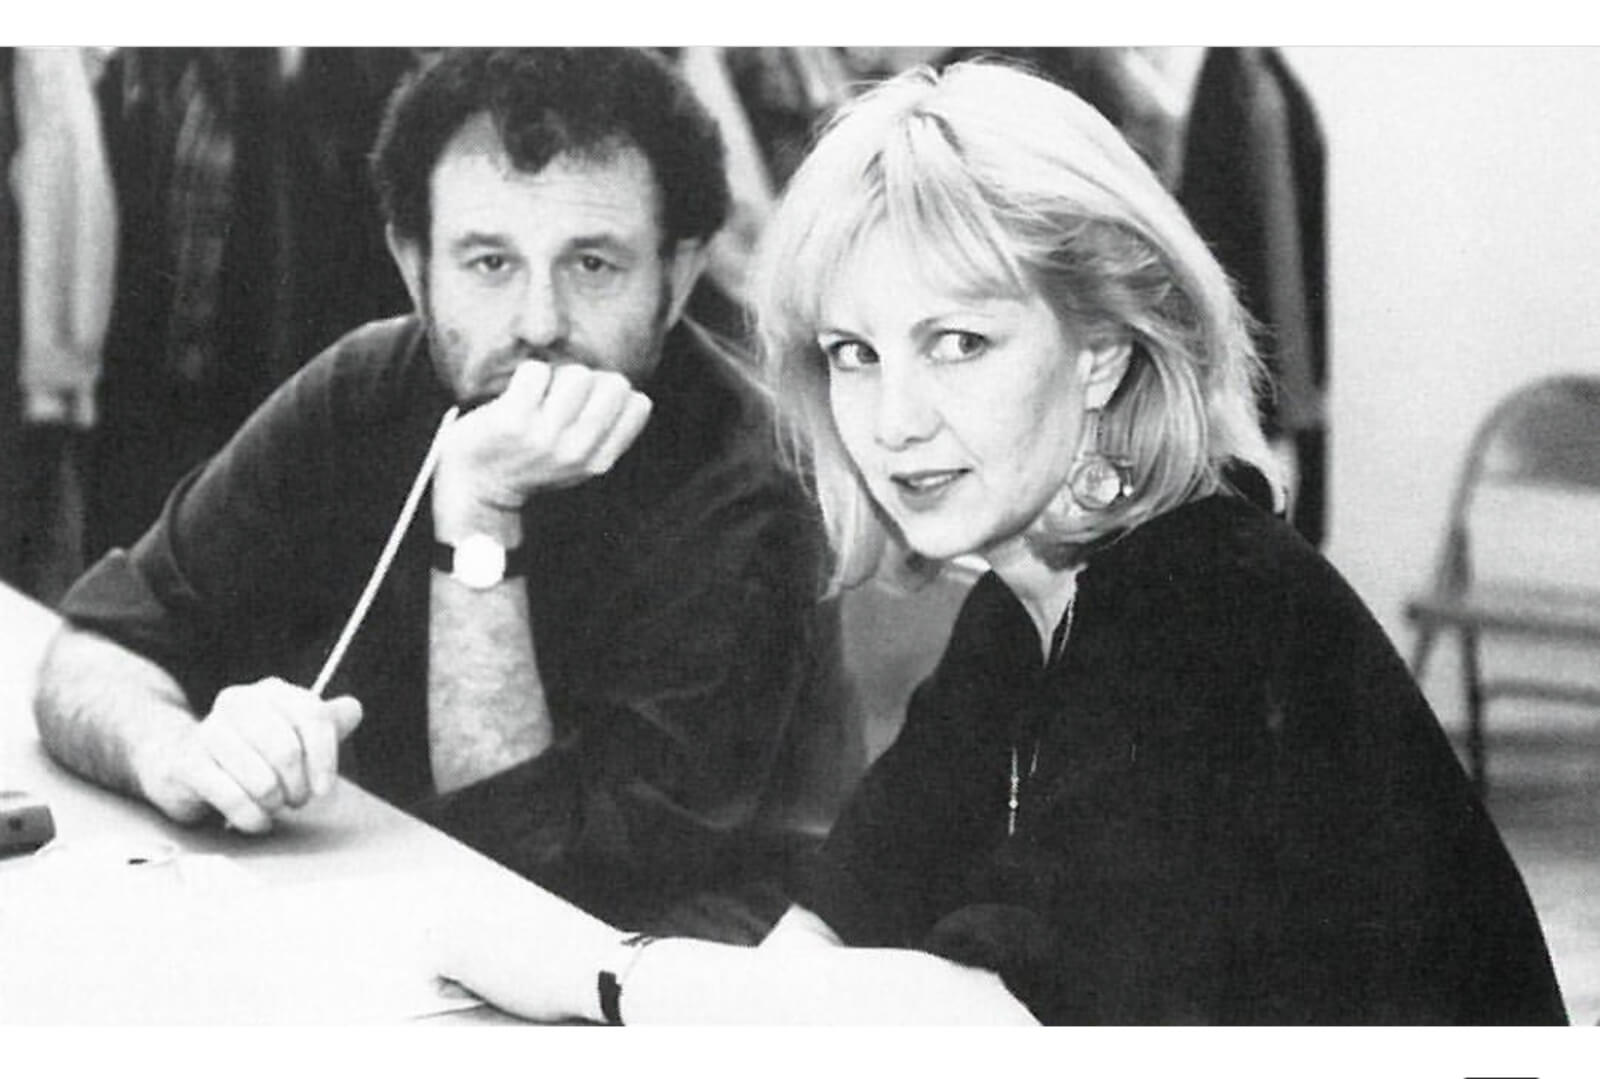 Mike Ockrent and Susan Stroman in rehearsal. Mike is holding a baton and looking at the camera while Stro is looking to the left at something happening in the room.